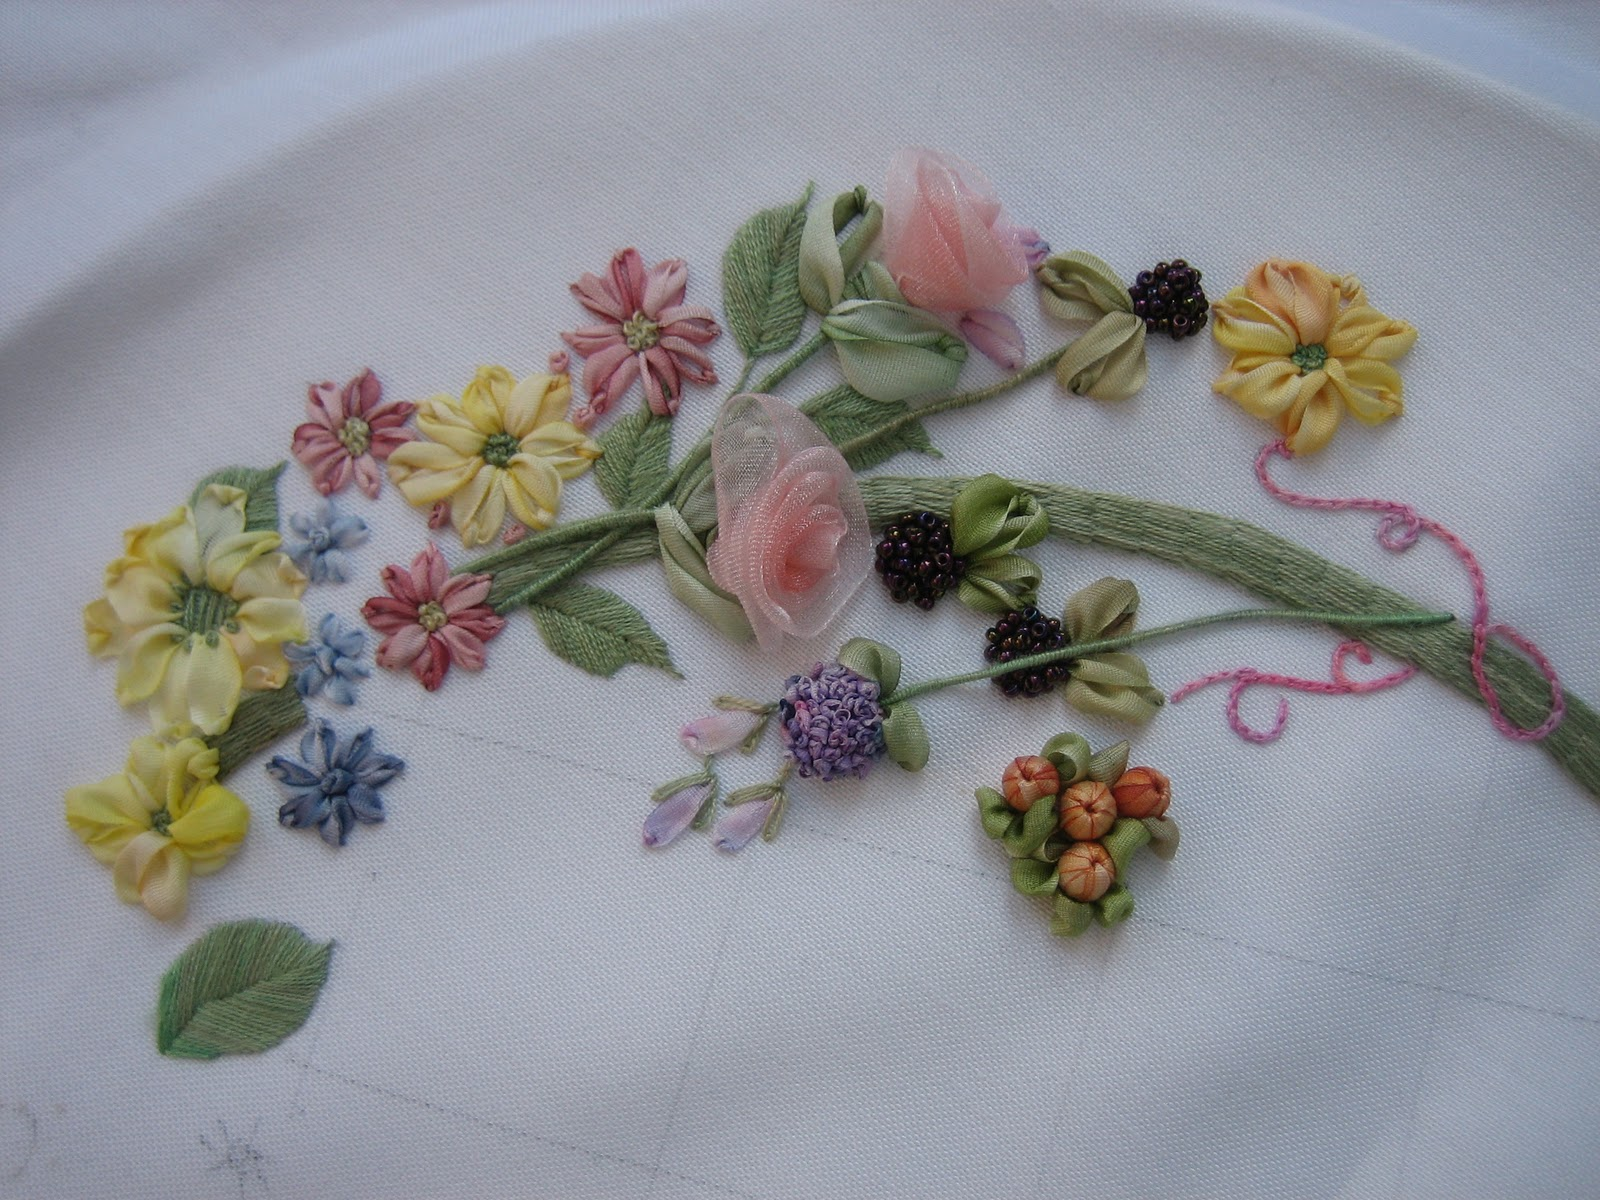 My Hands' Work: Silk Ribbon Embroidery